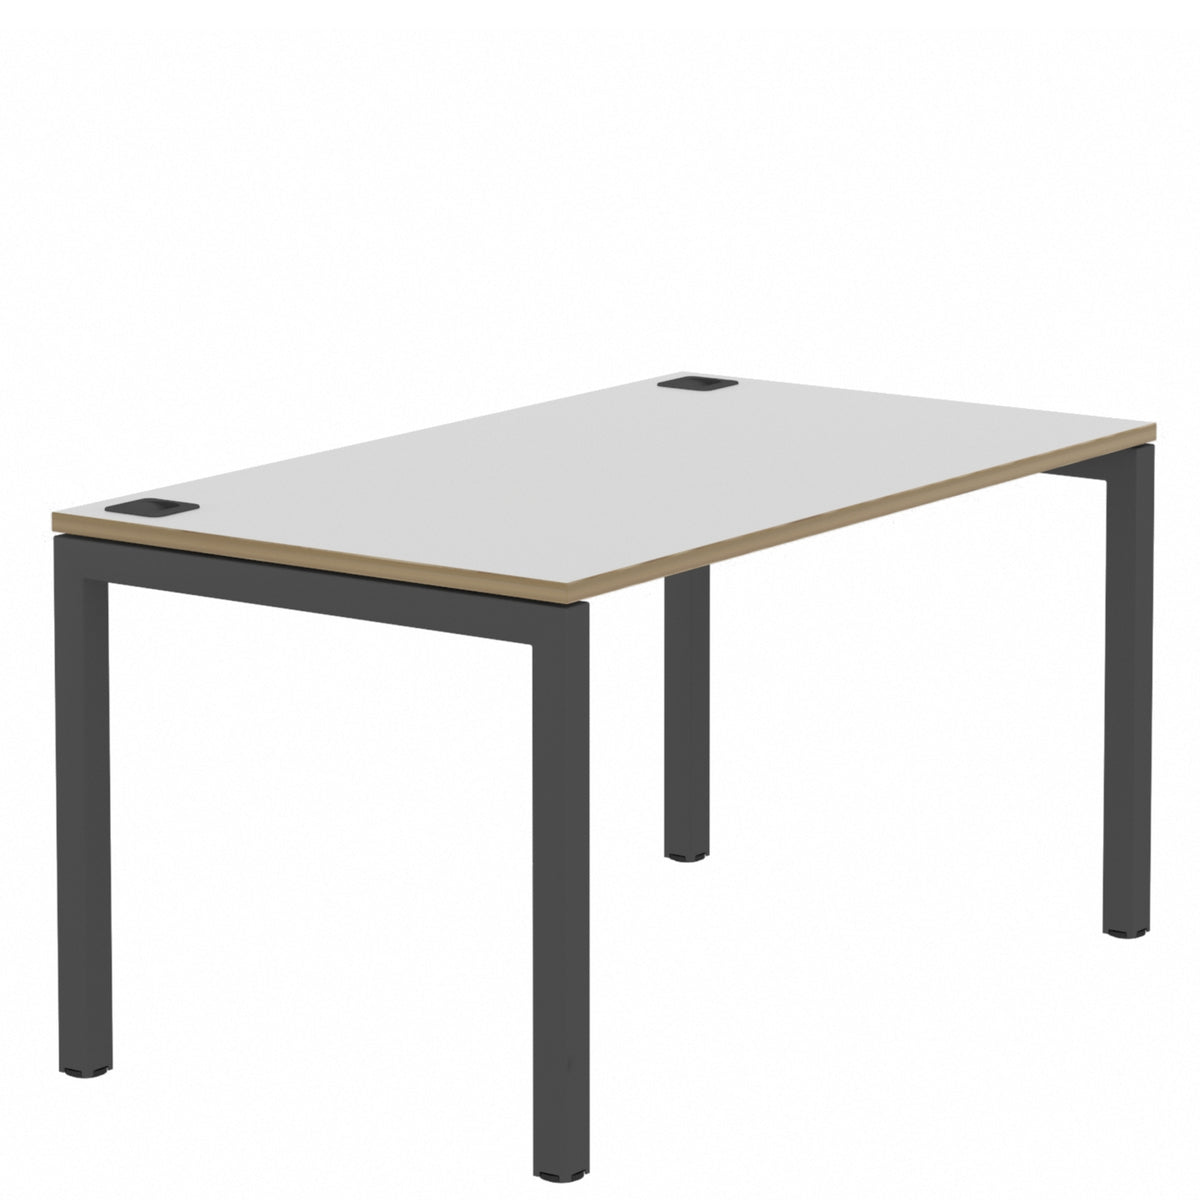 Elite Office Matrix Desk 1200mm White with Plywood Edge